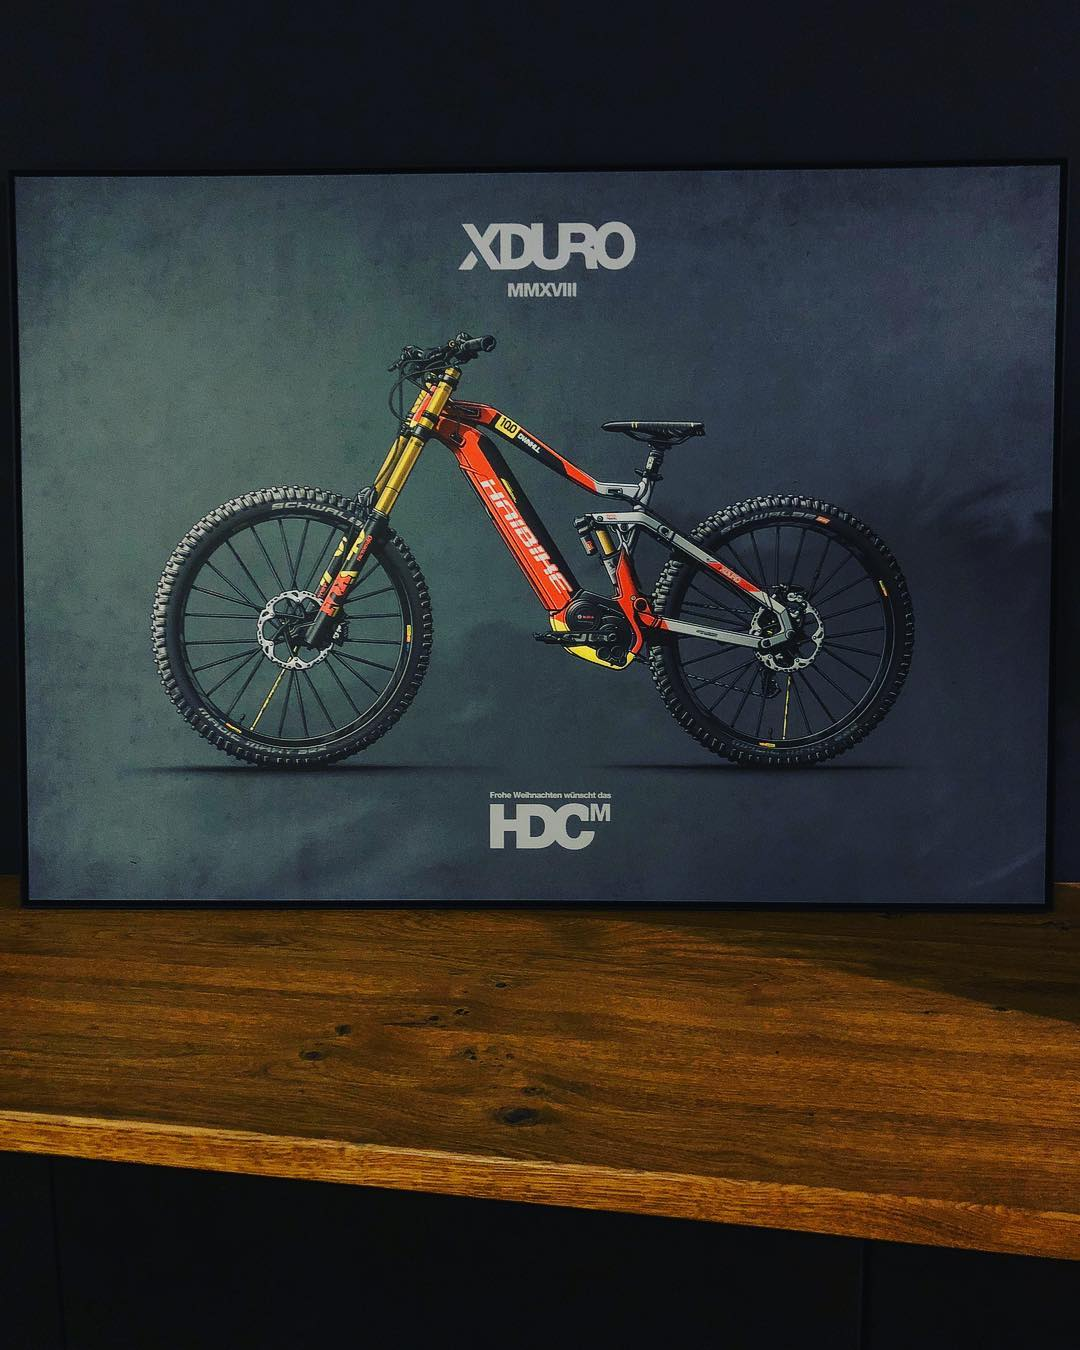 Xmas present to some of our partners and also one for ourselves for the office. Big thanks to @jepsenillustration for coming through on illustrating this shot of one of our favourite bike designs last year, looks so killer blown up like this on Alu-Dibond. Merry Xmas! #haibike #design #xduro #emtb